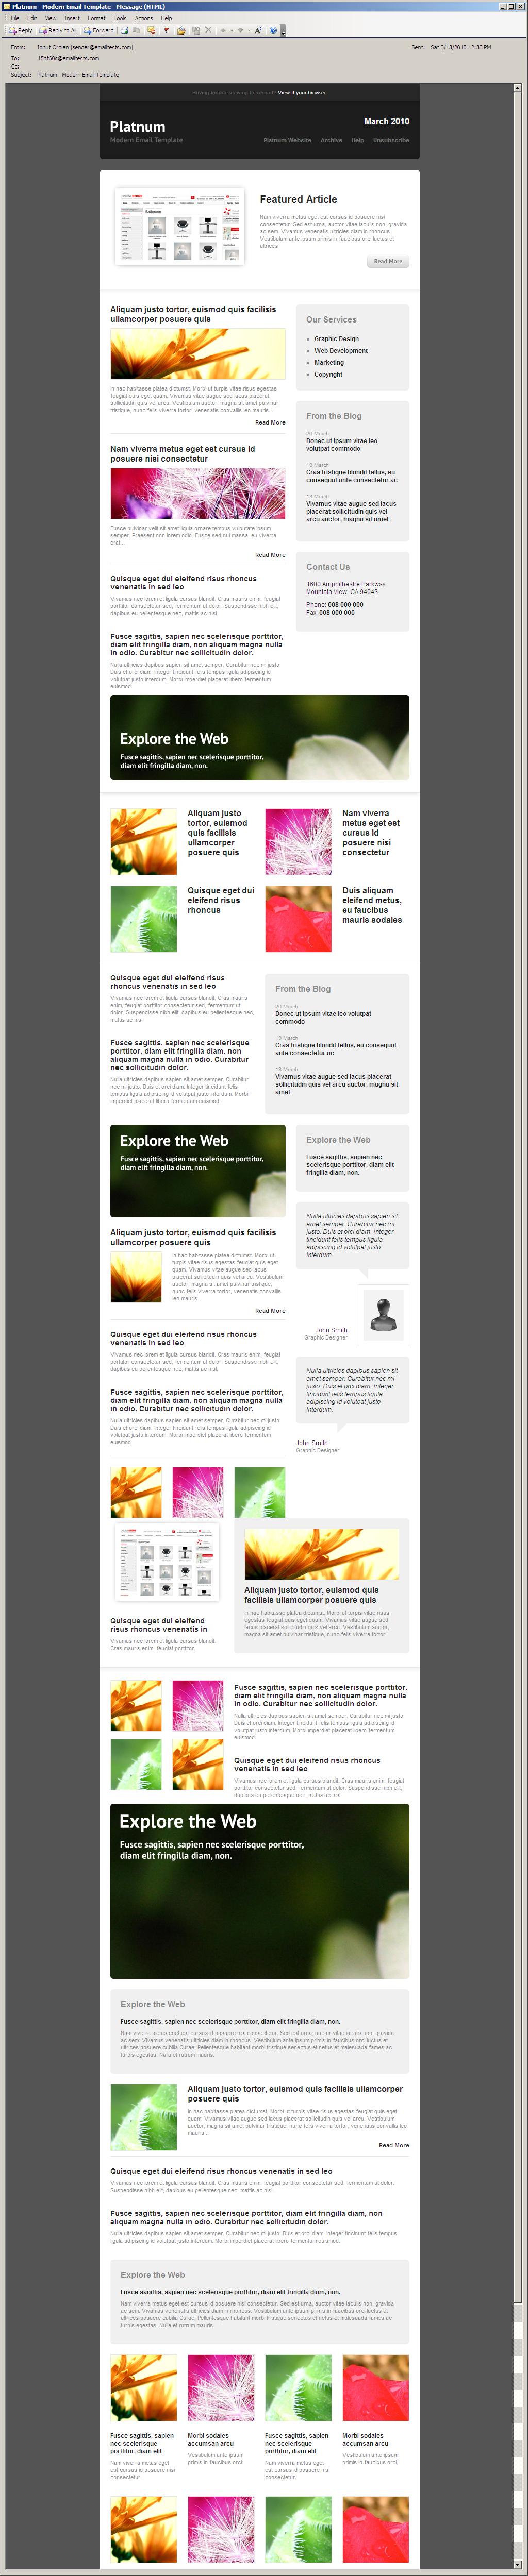 Platnum Email Template, 6 Layouts, 8 Colors - Outlook 2003 - All elements listed.